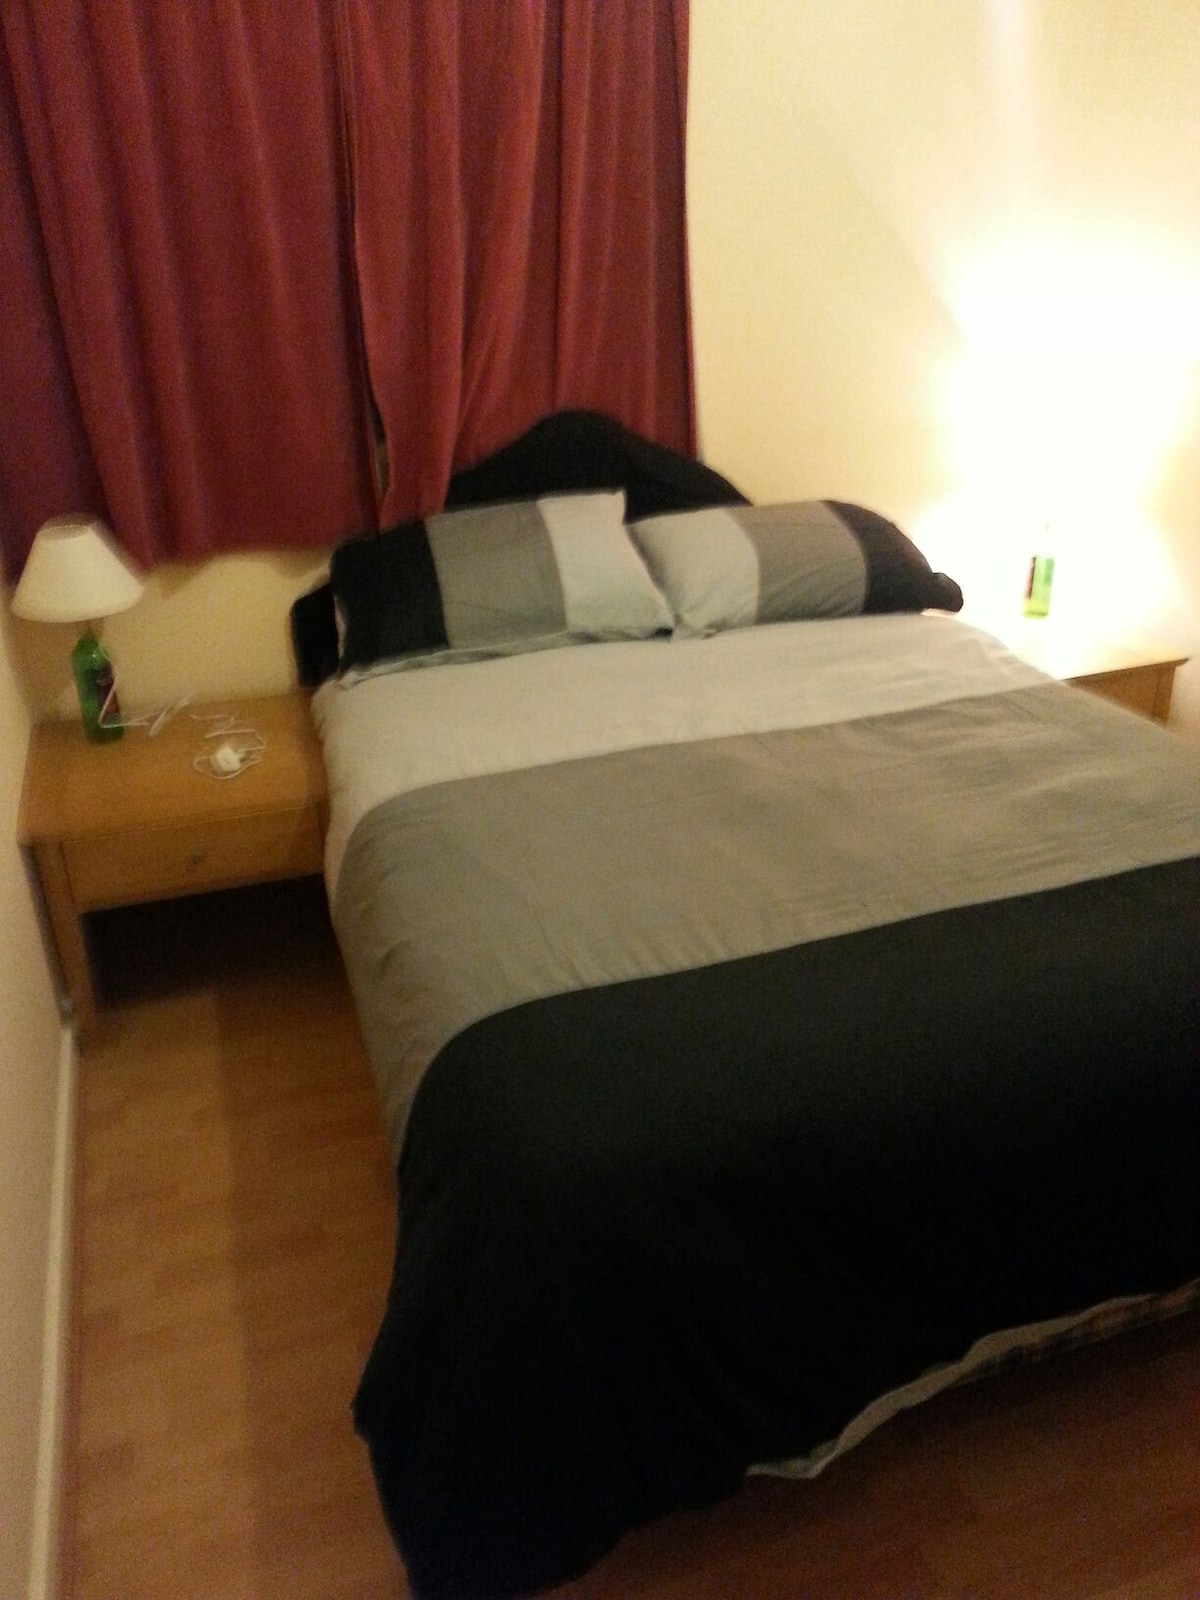 Room w/ double bed near city center